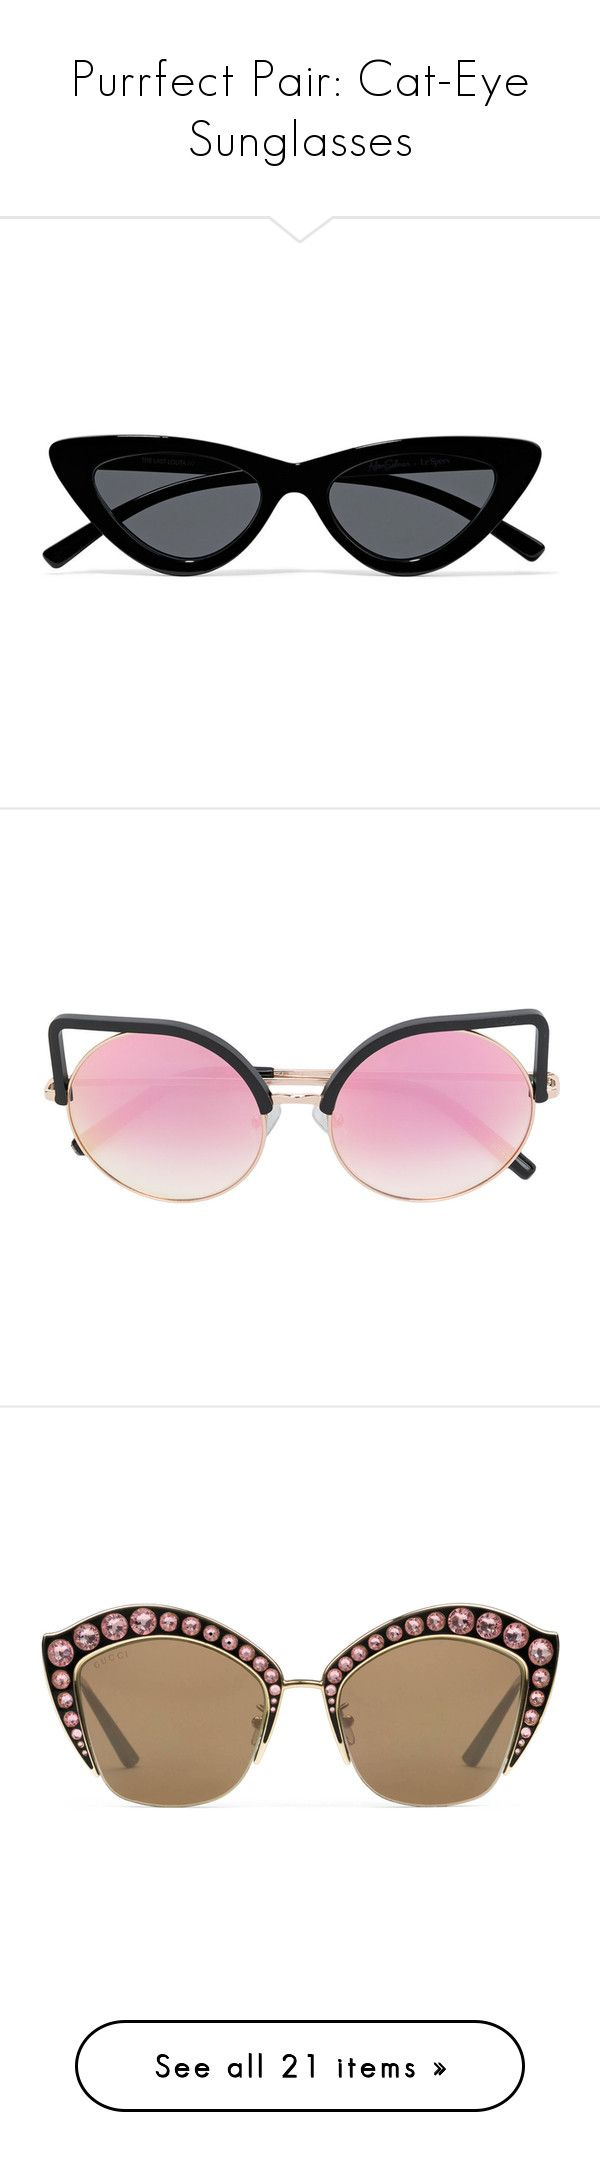 """""""Purrfect Pair: Cat-Eye Sunglasses"""" by polyvore-editorial ❤ liked on Polyvore featuring cateyesunglasses, accessories, eyewear, sunglasses, glasses, black, cat eye sunnies, uv protection sunglasses, cat-eye glasses and dot sunglasses"""